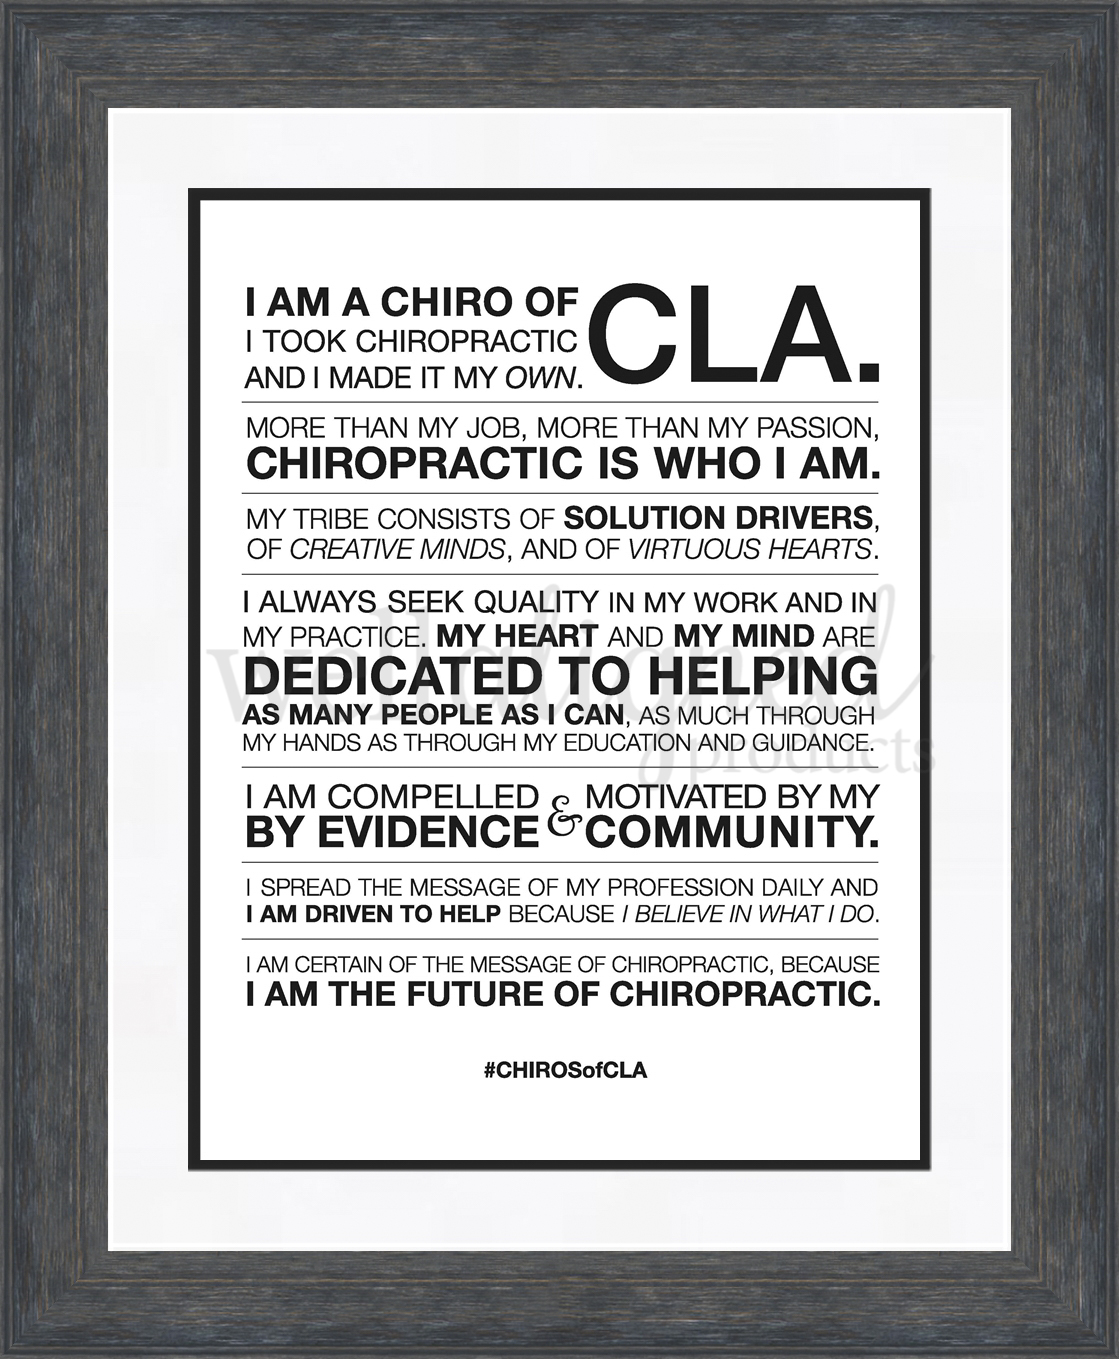 CHIROSofCLA Manifesto Poster (12x16) - Well Aligned Products